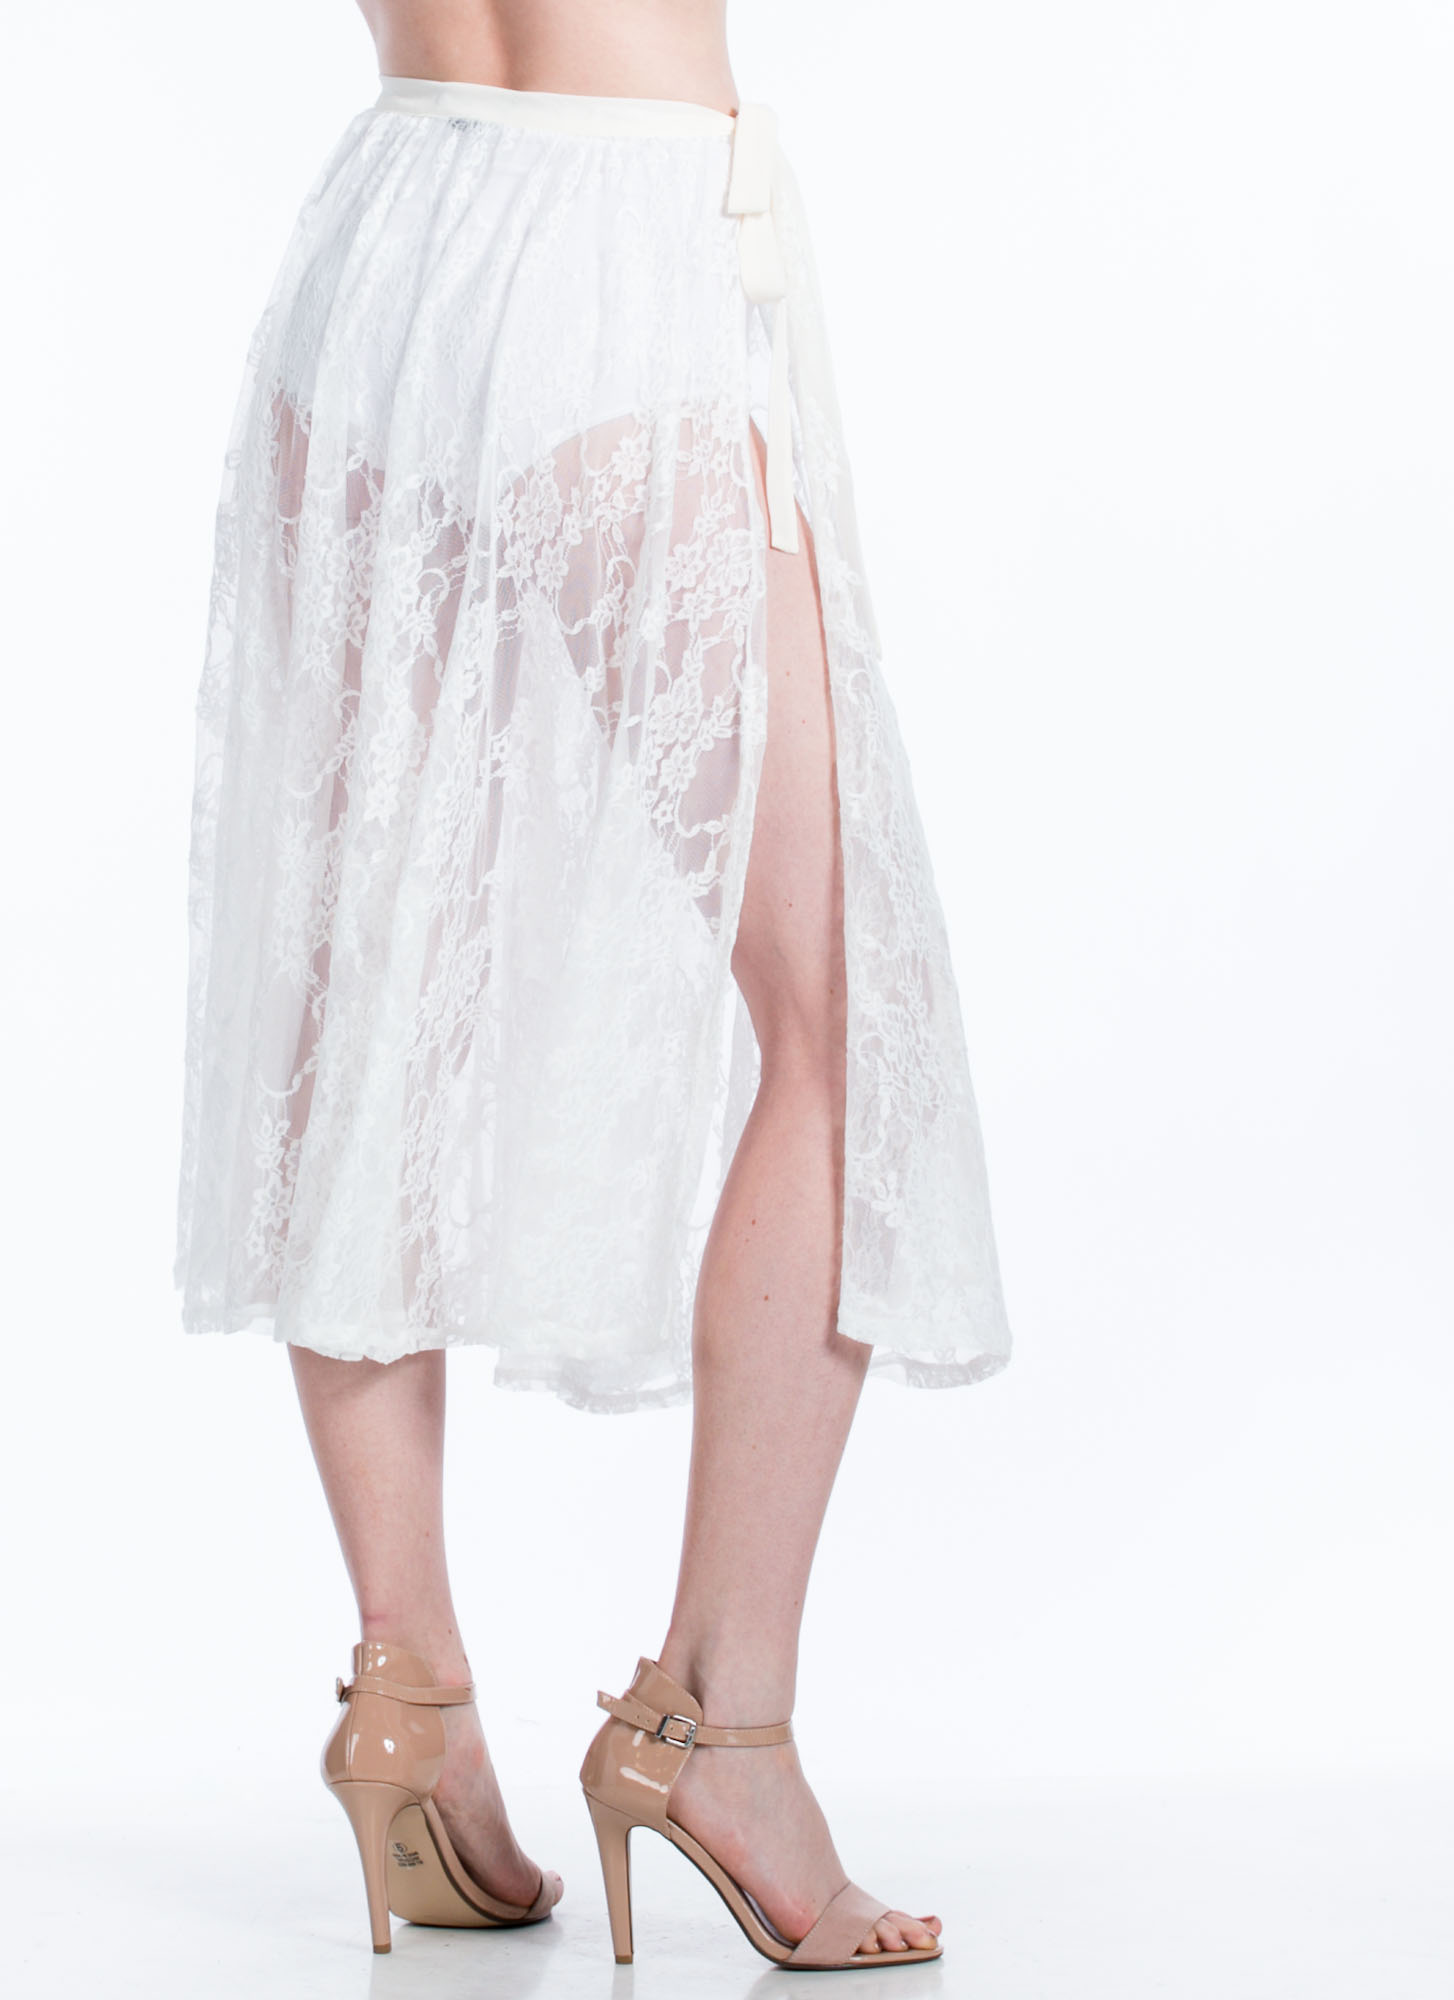 Sheer Lace Midi Skirt IVORY (Final Sale)